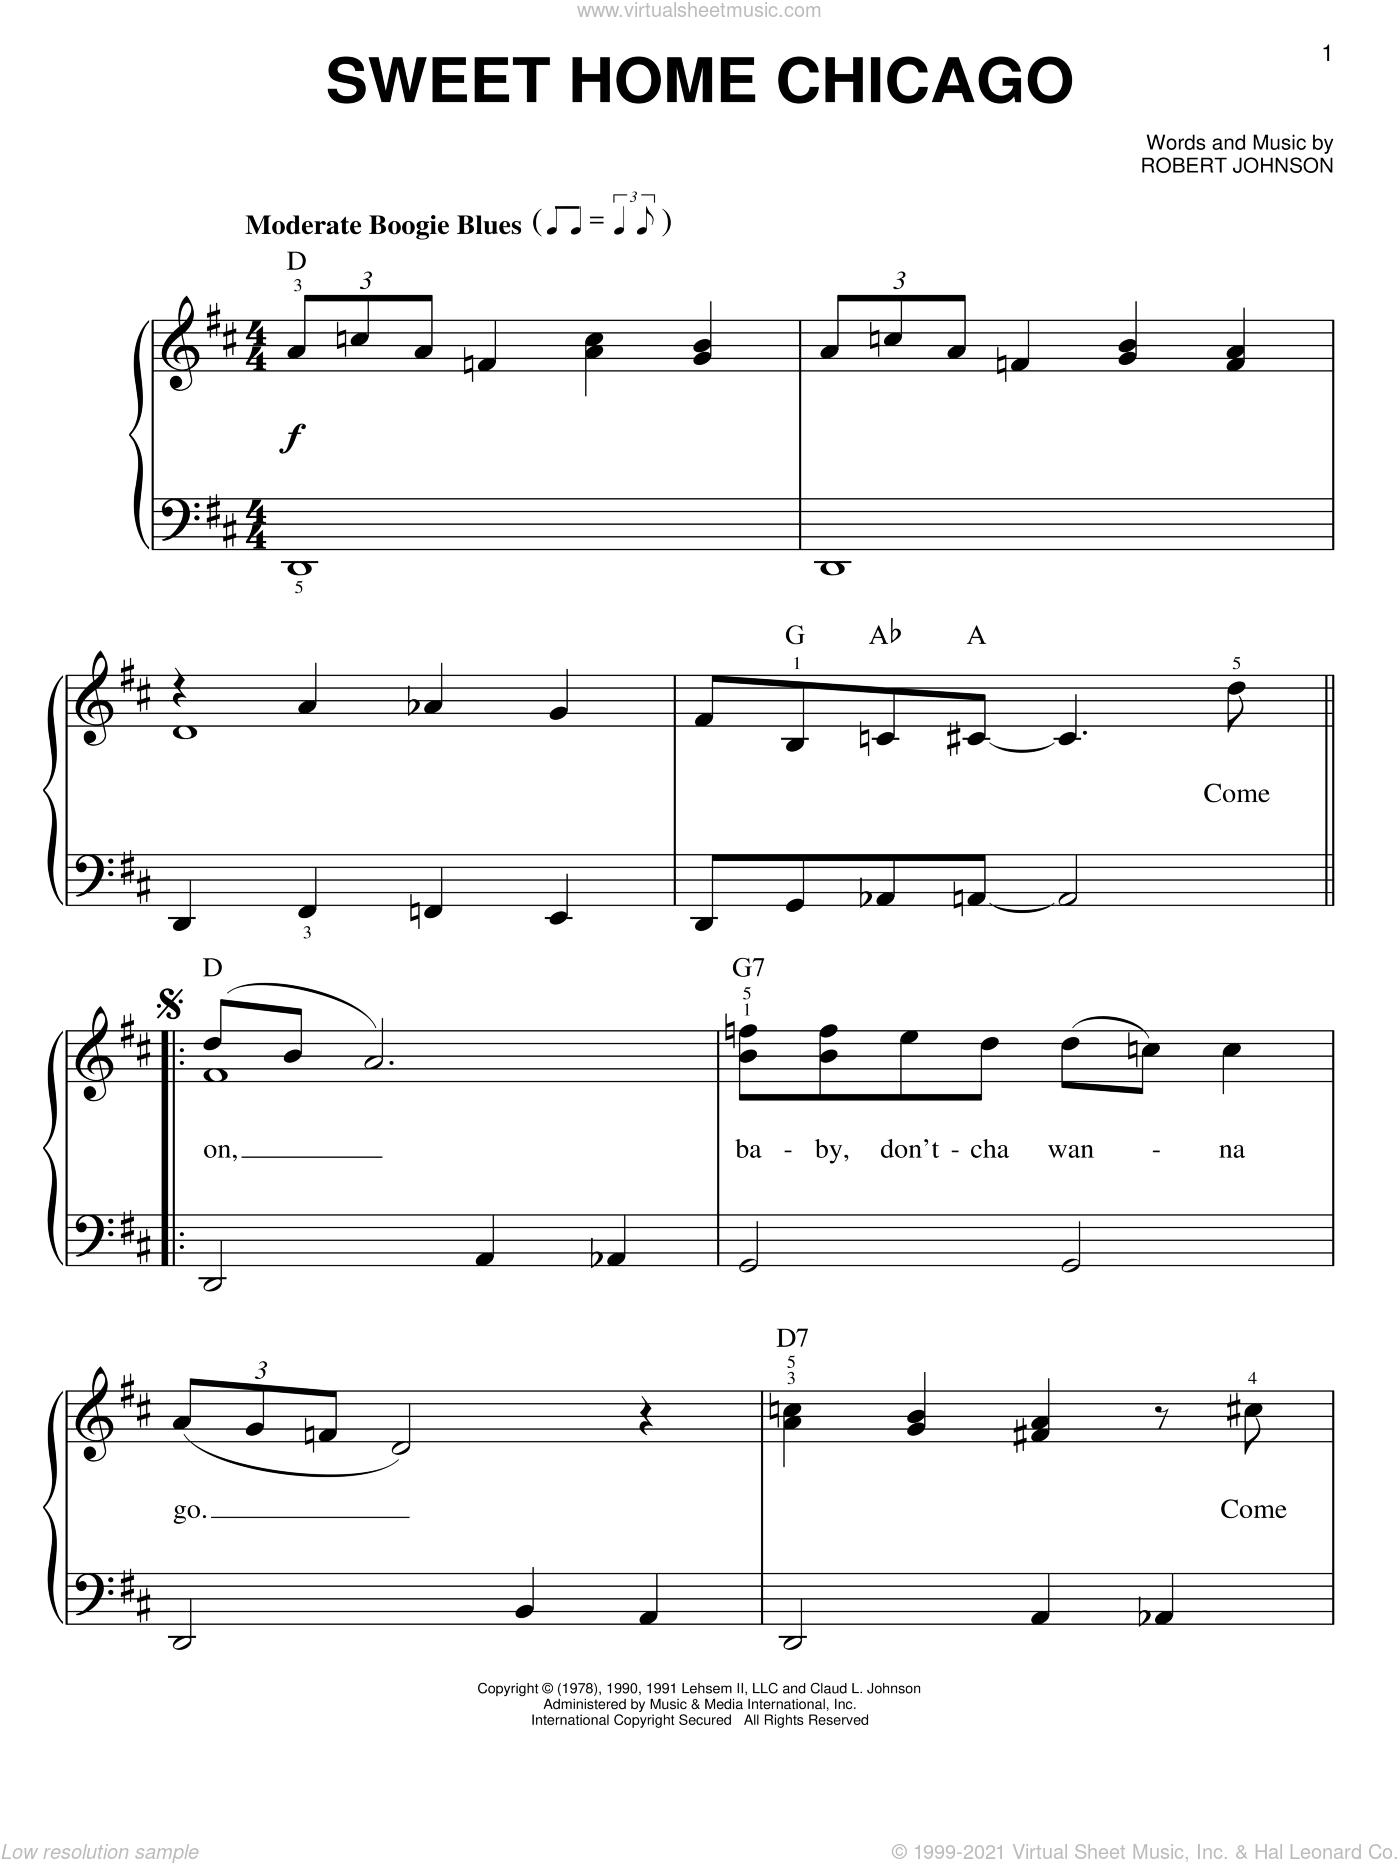 Uno de los tres reyes: Johnson Sweet Home Chicago Easy Sheet Music For Piano Solo